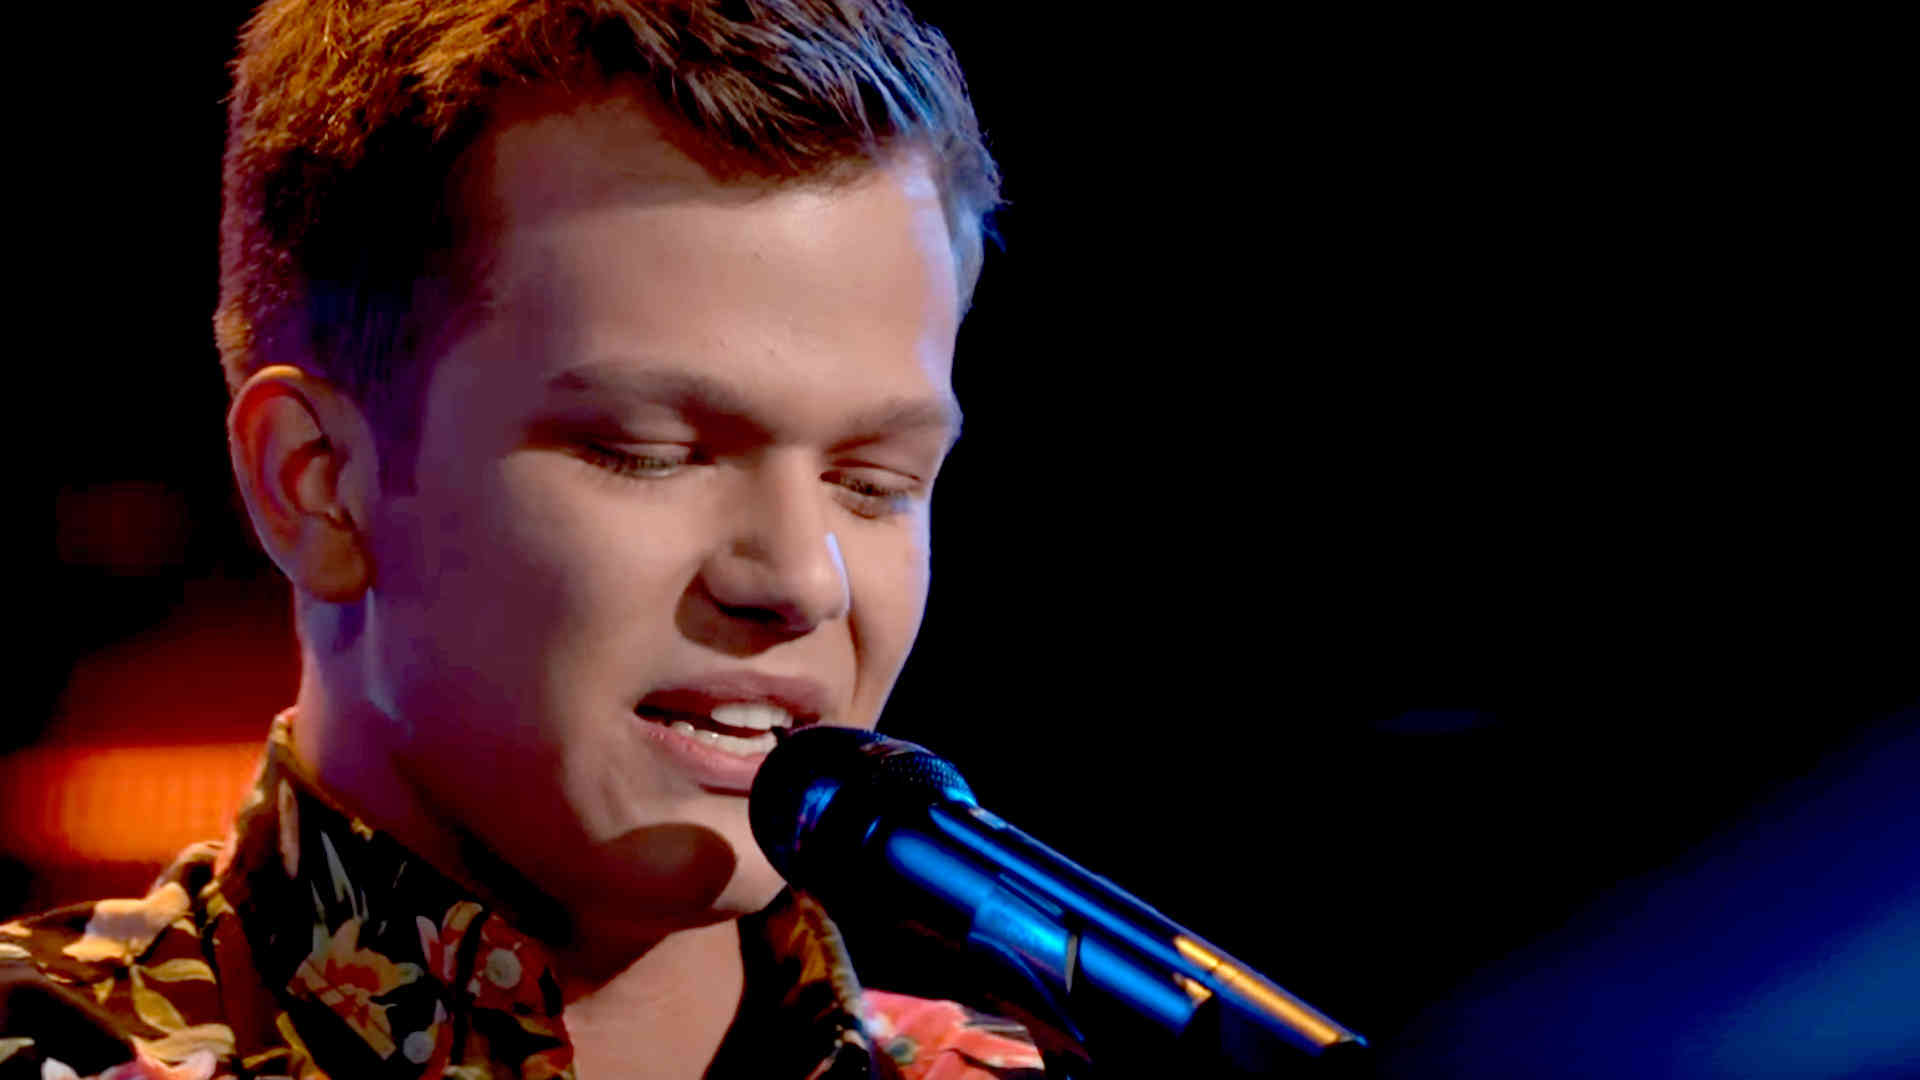 "Watch The Voice 2018 Blind Audition of Britton Buchanan ""Trouble"" in The Voice 2018 season 14 Blind Audition 26 February 2018"